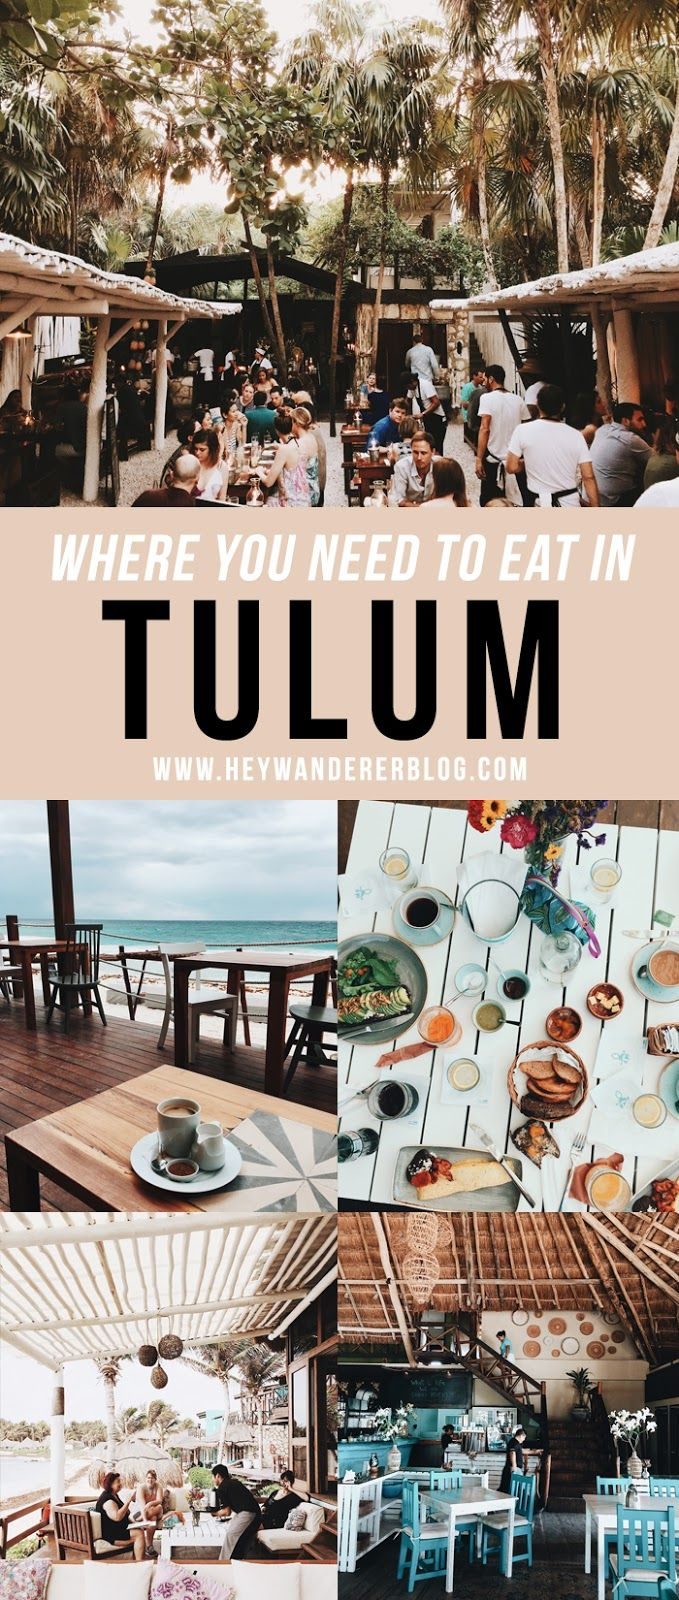 An in-depth guide to Tulum: Everything you need to know about where to eat in this hip beach town in Mexico.